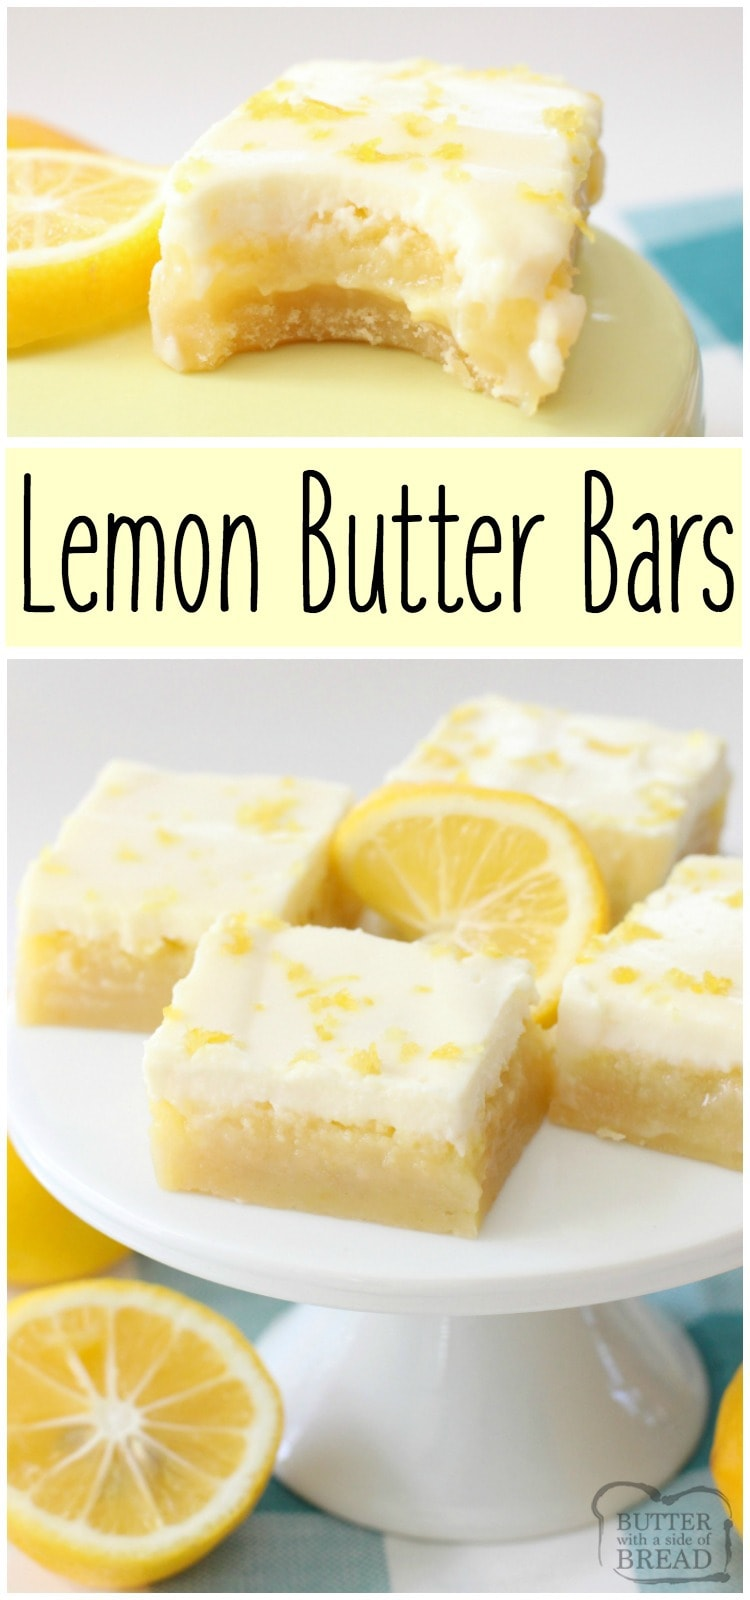 Lemon Butter Bars are simple to make, and everyone who tries them will love the three refreshing layers of bright, sweet flavor!